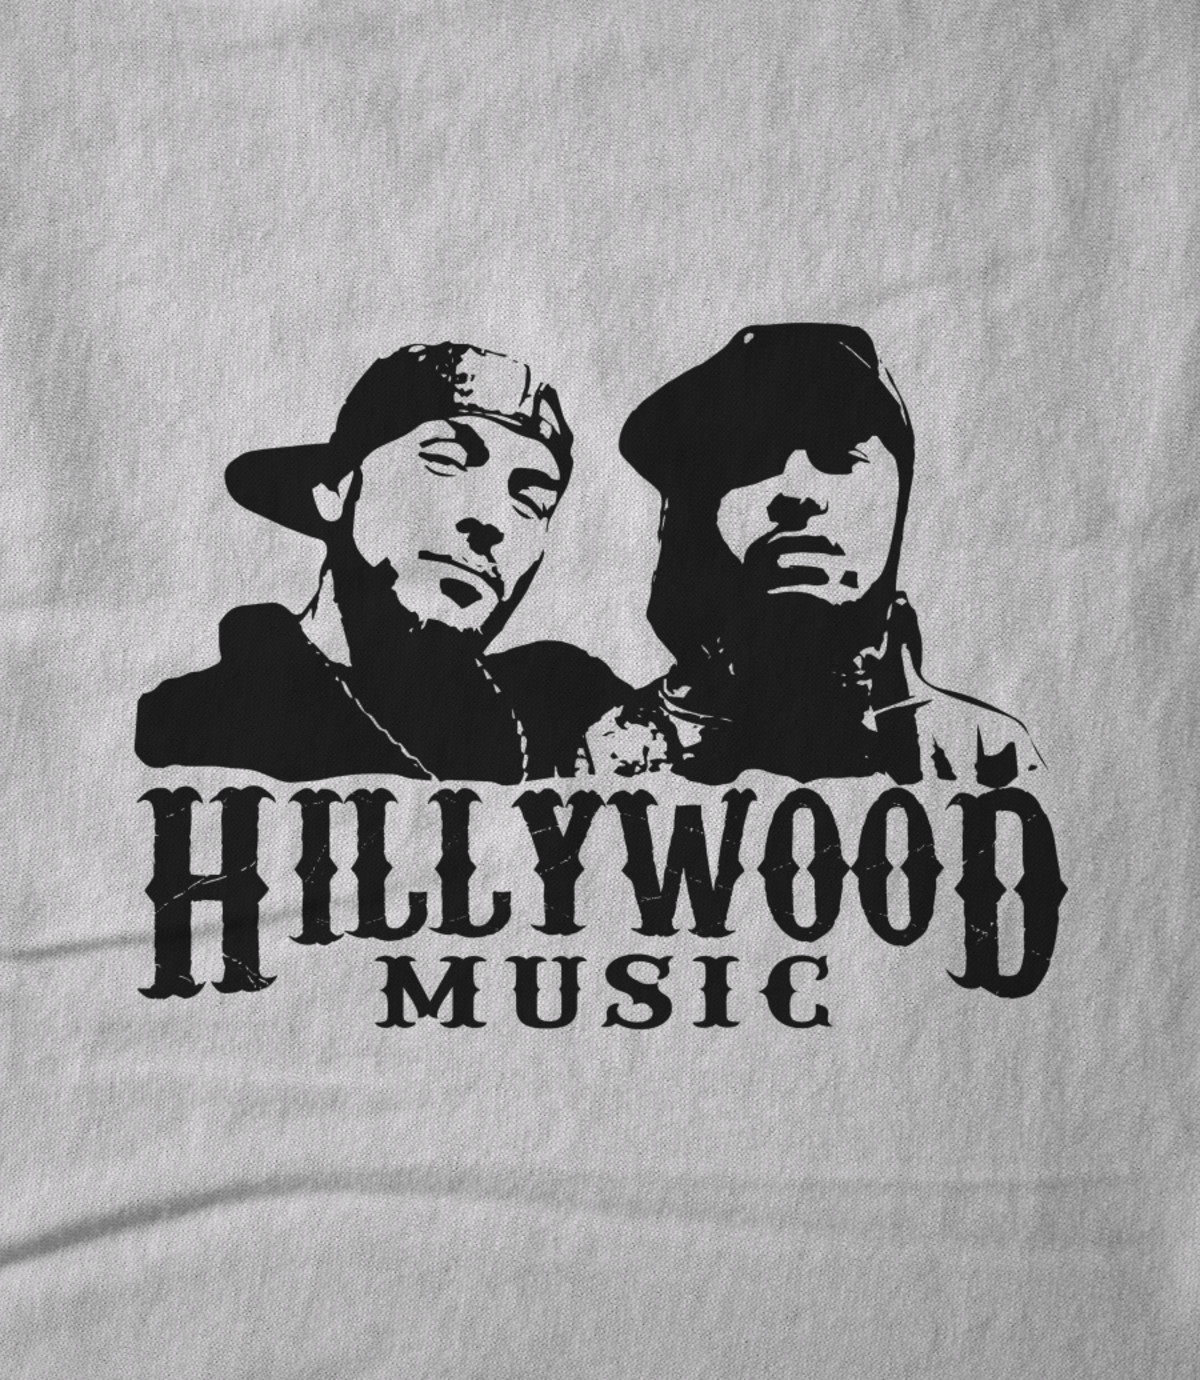 Hillywood music official hillywood music  white  1525719139